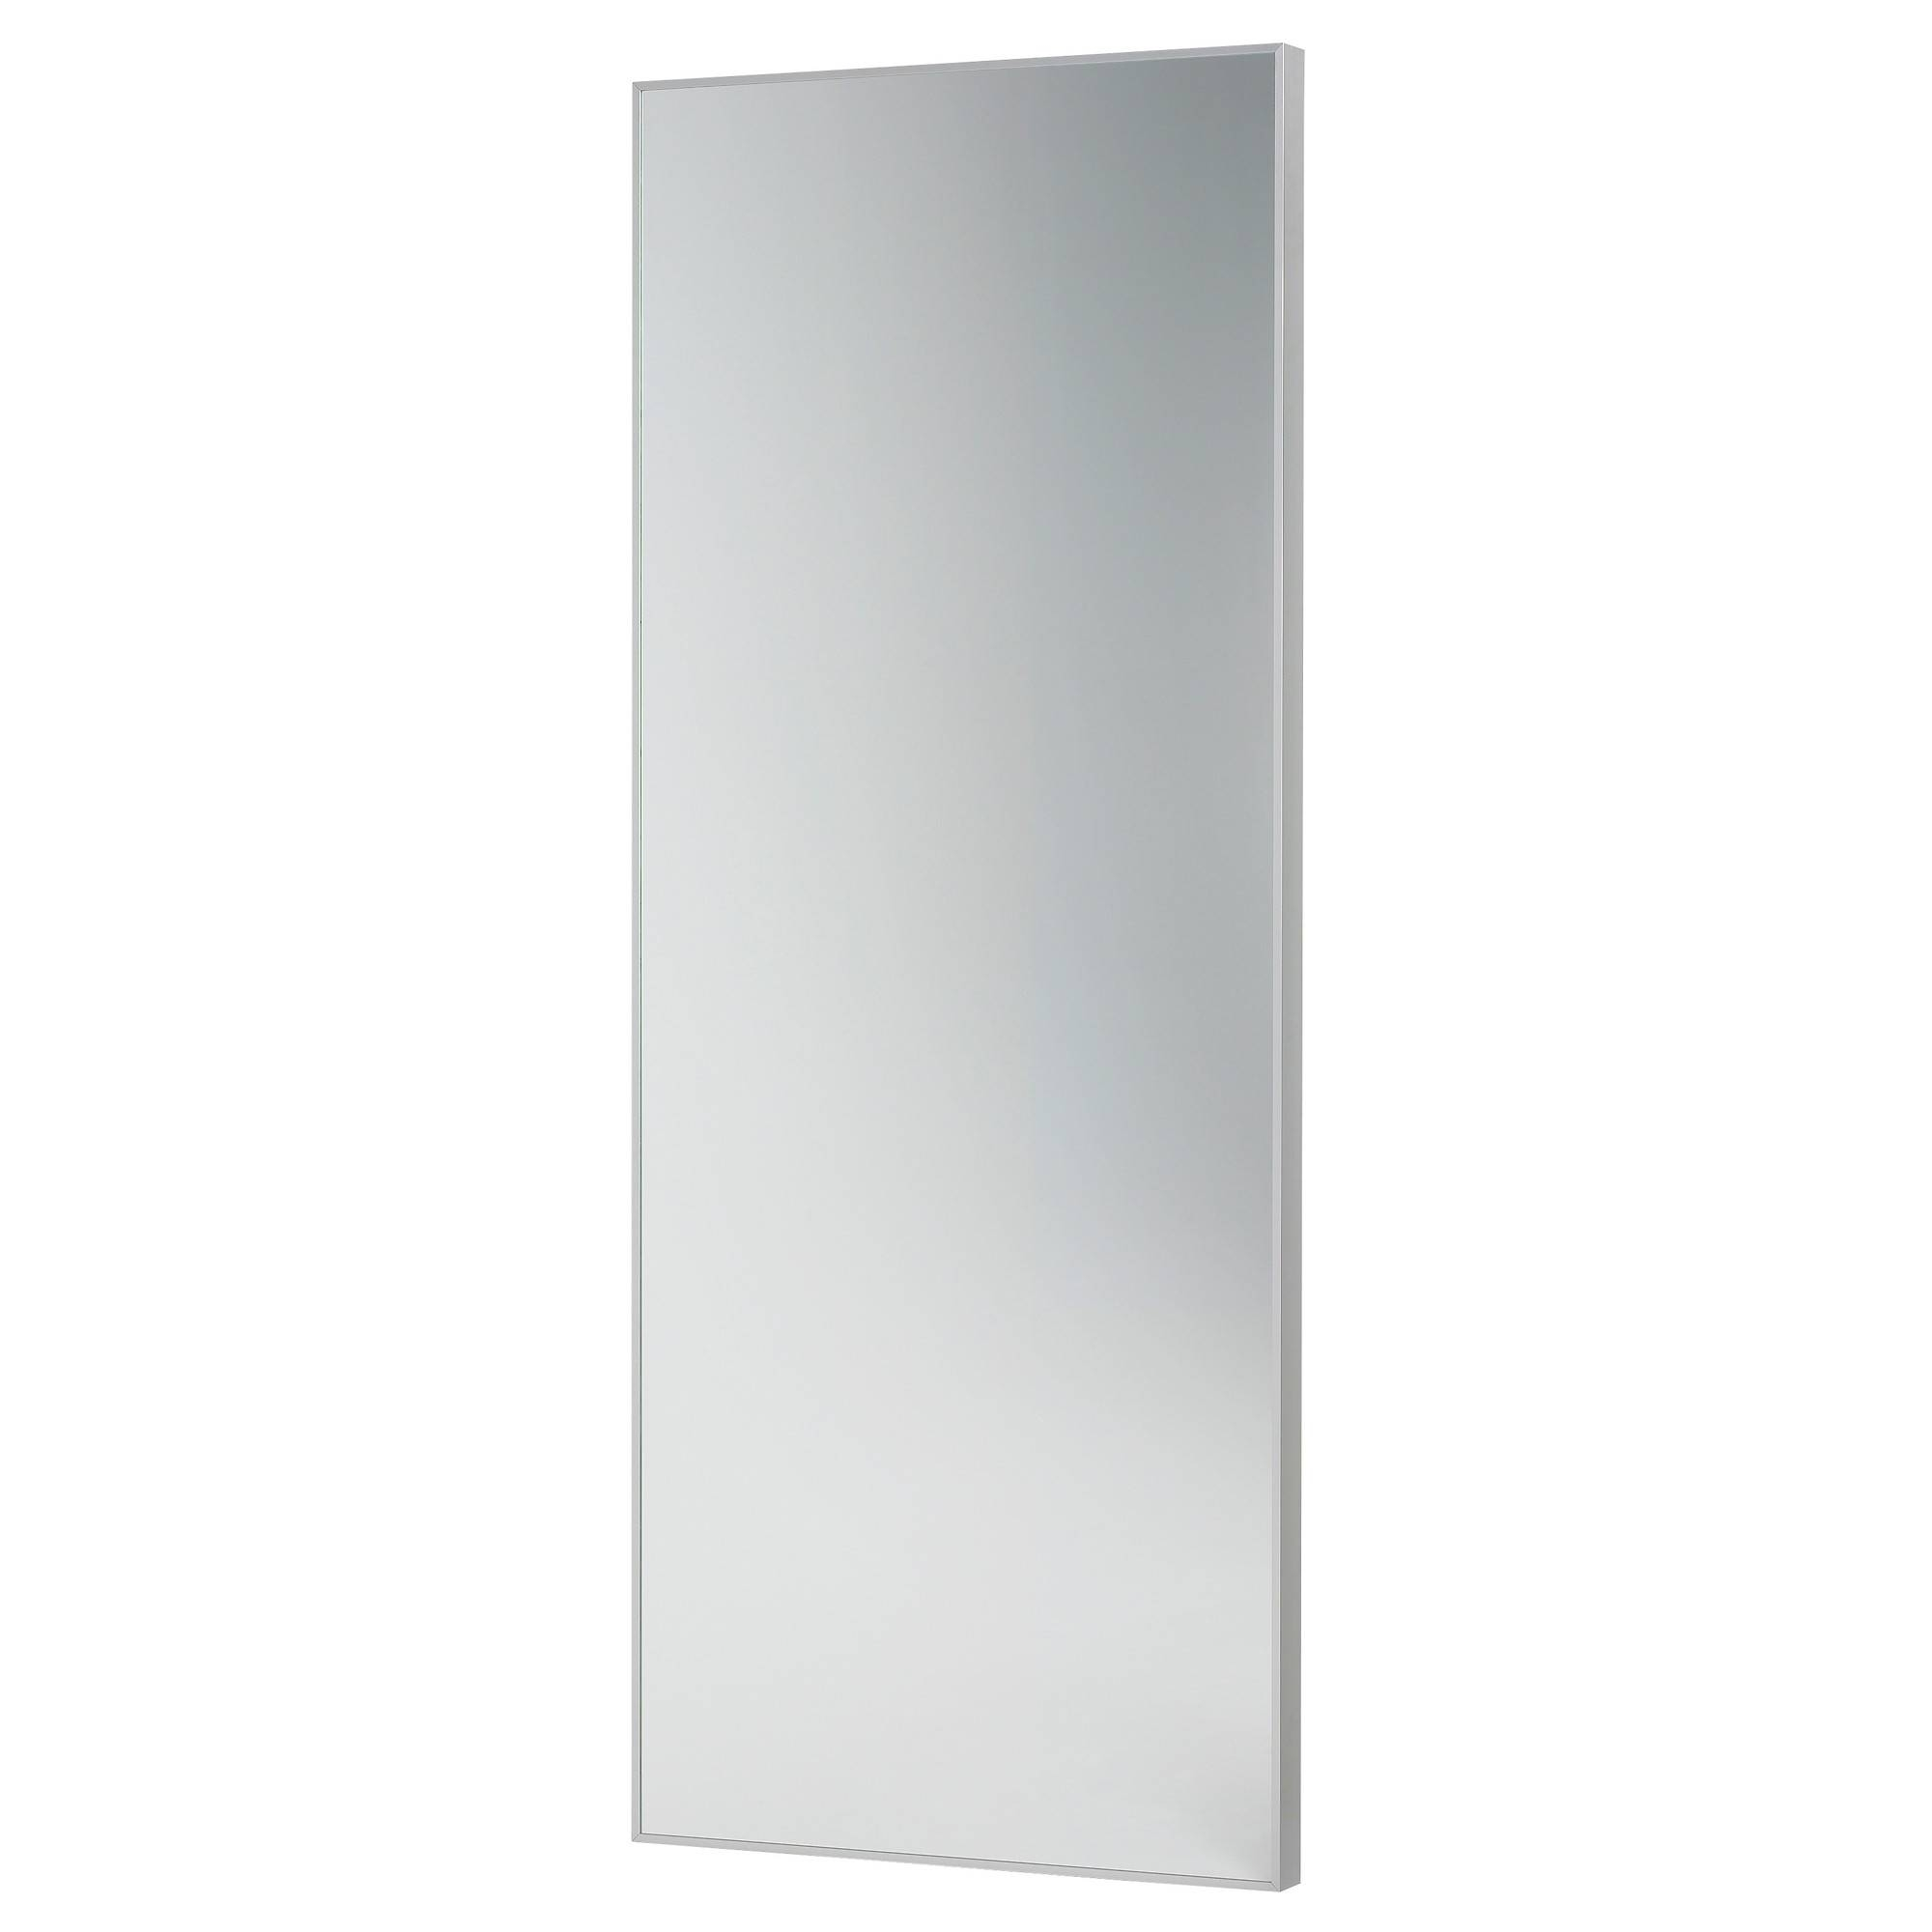 Mirrors - Ikea throughout Slim Wall Mirrors (Image 10 of 15)